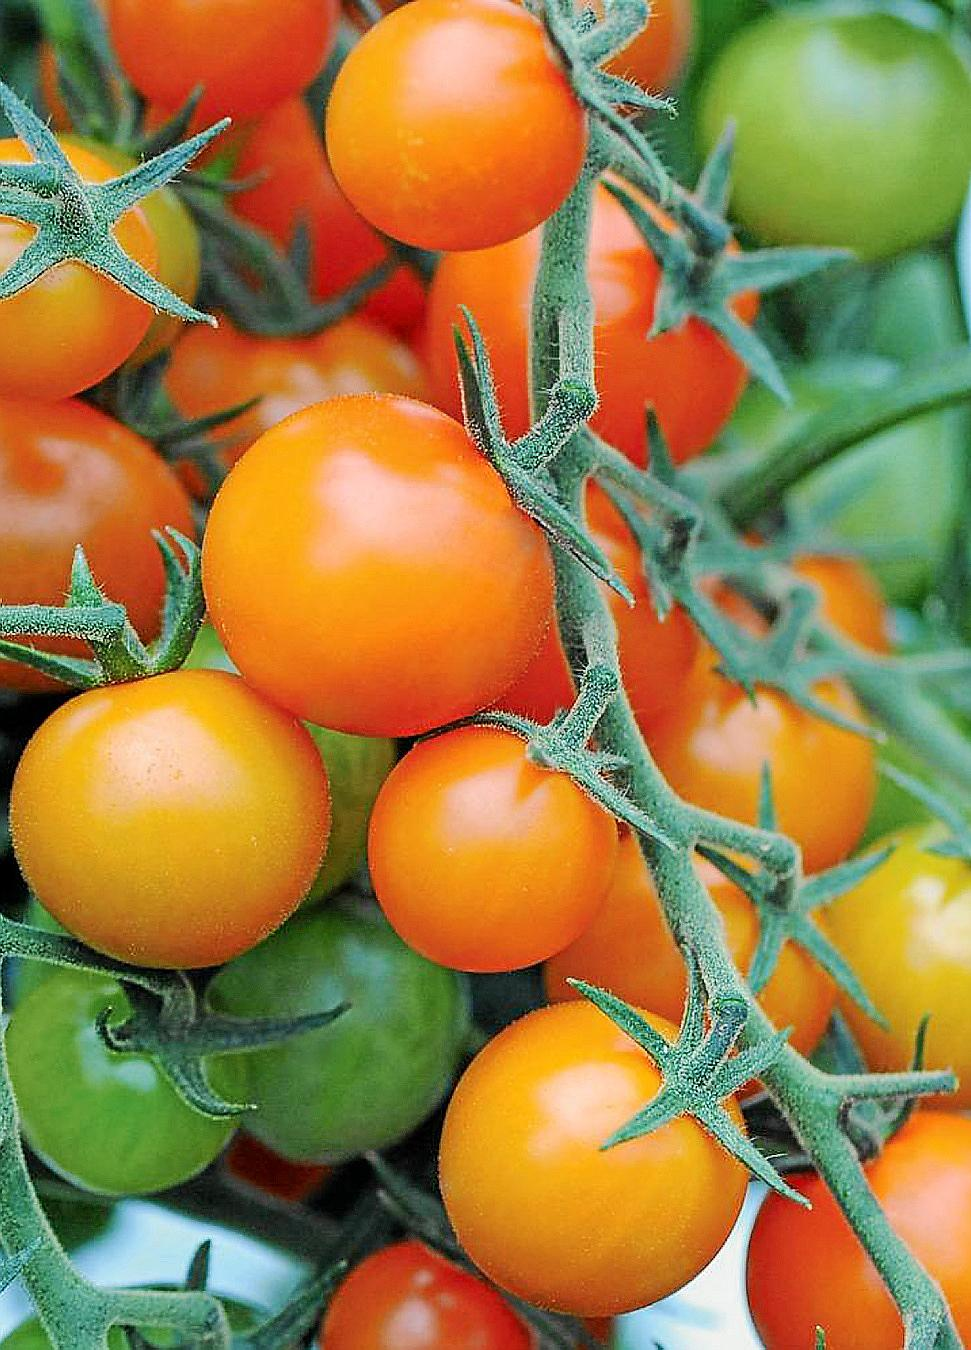 Tomatoes in the summer